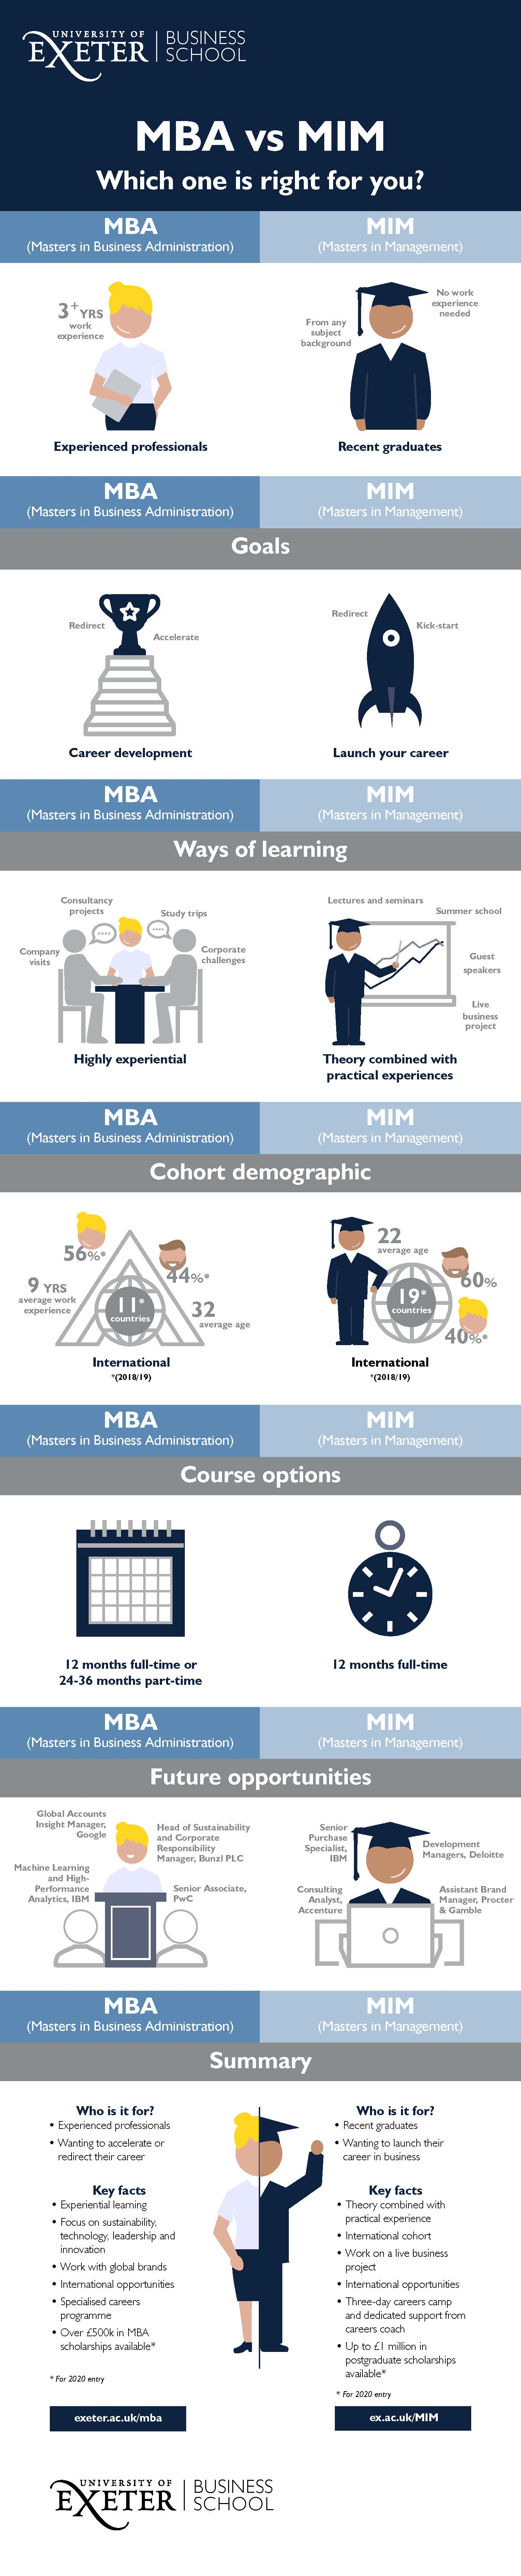 MBA v MIM Infographic FINAL